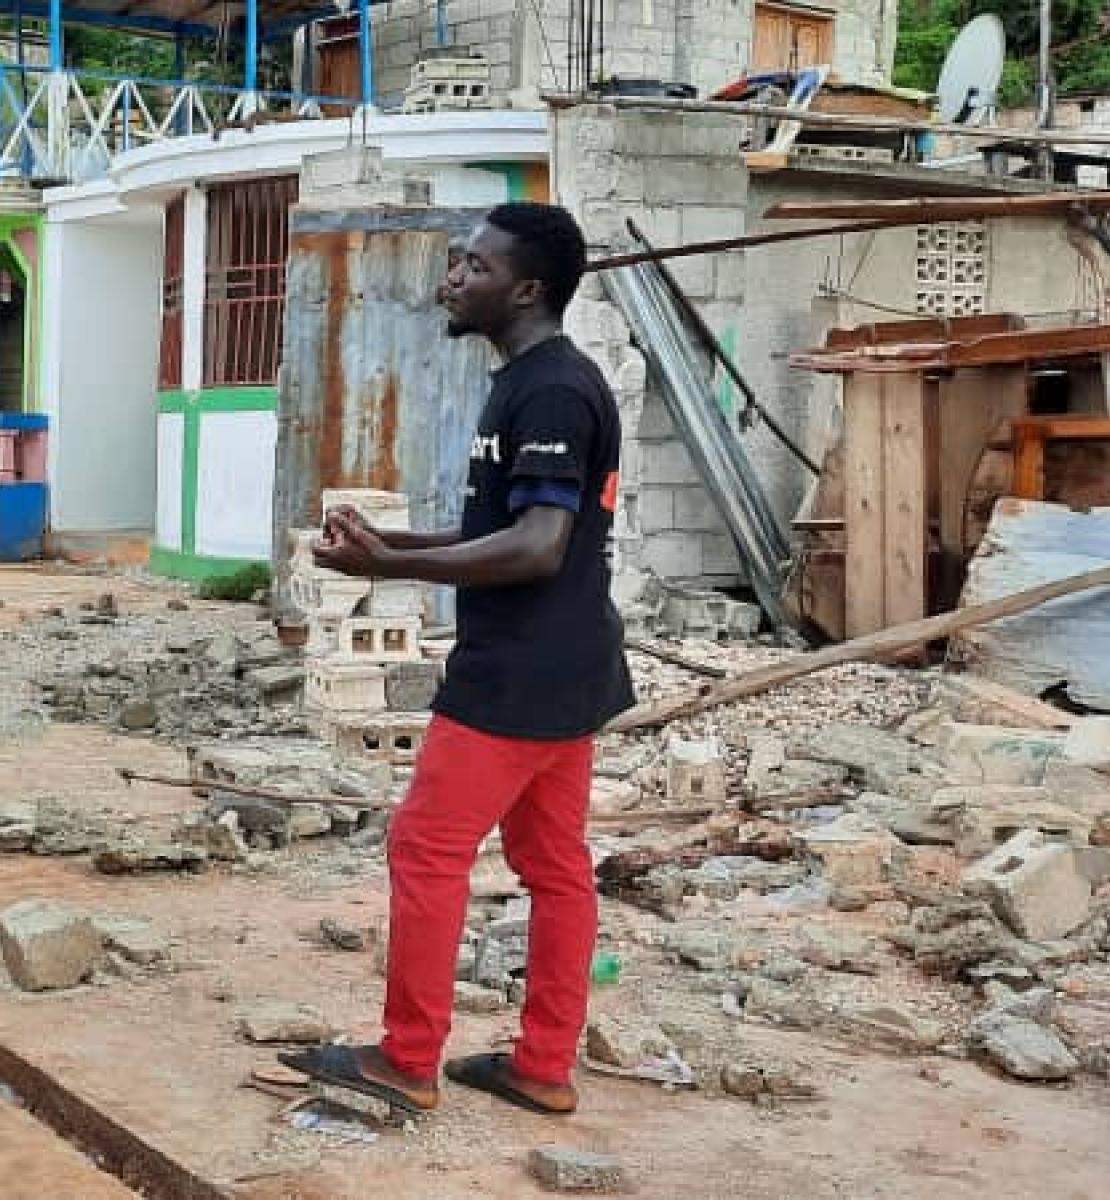 A young man in red pants speaks to a large group of volunteers and aid workers near rubble from the earthquake.